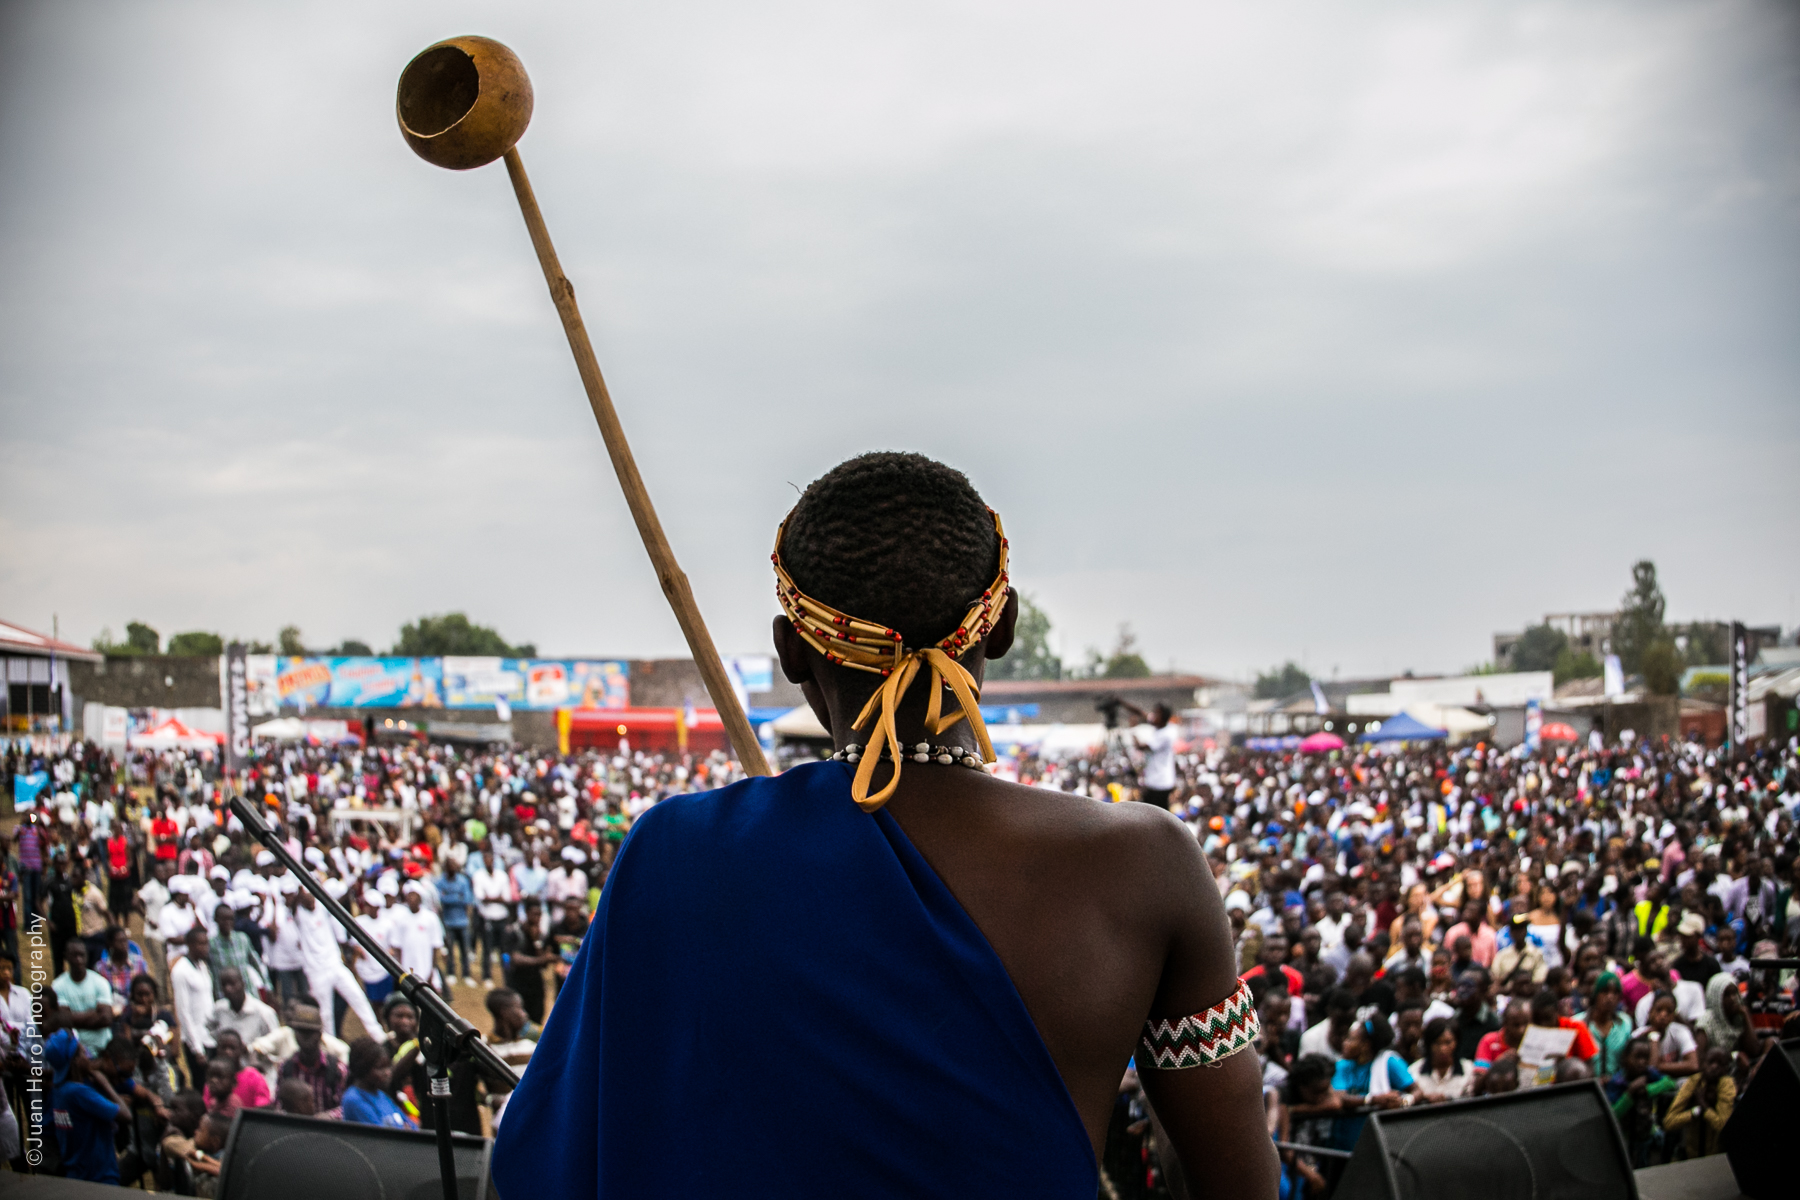 photo essay 34 000 people 1 message singing for peace in goma the performance led by the an band alfred and bernard was a definite highlight the band combined traditional instruments known as umuduri